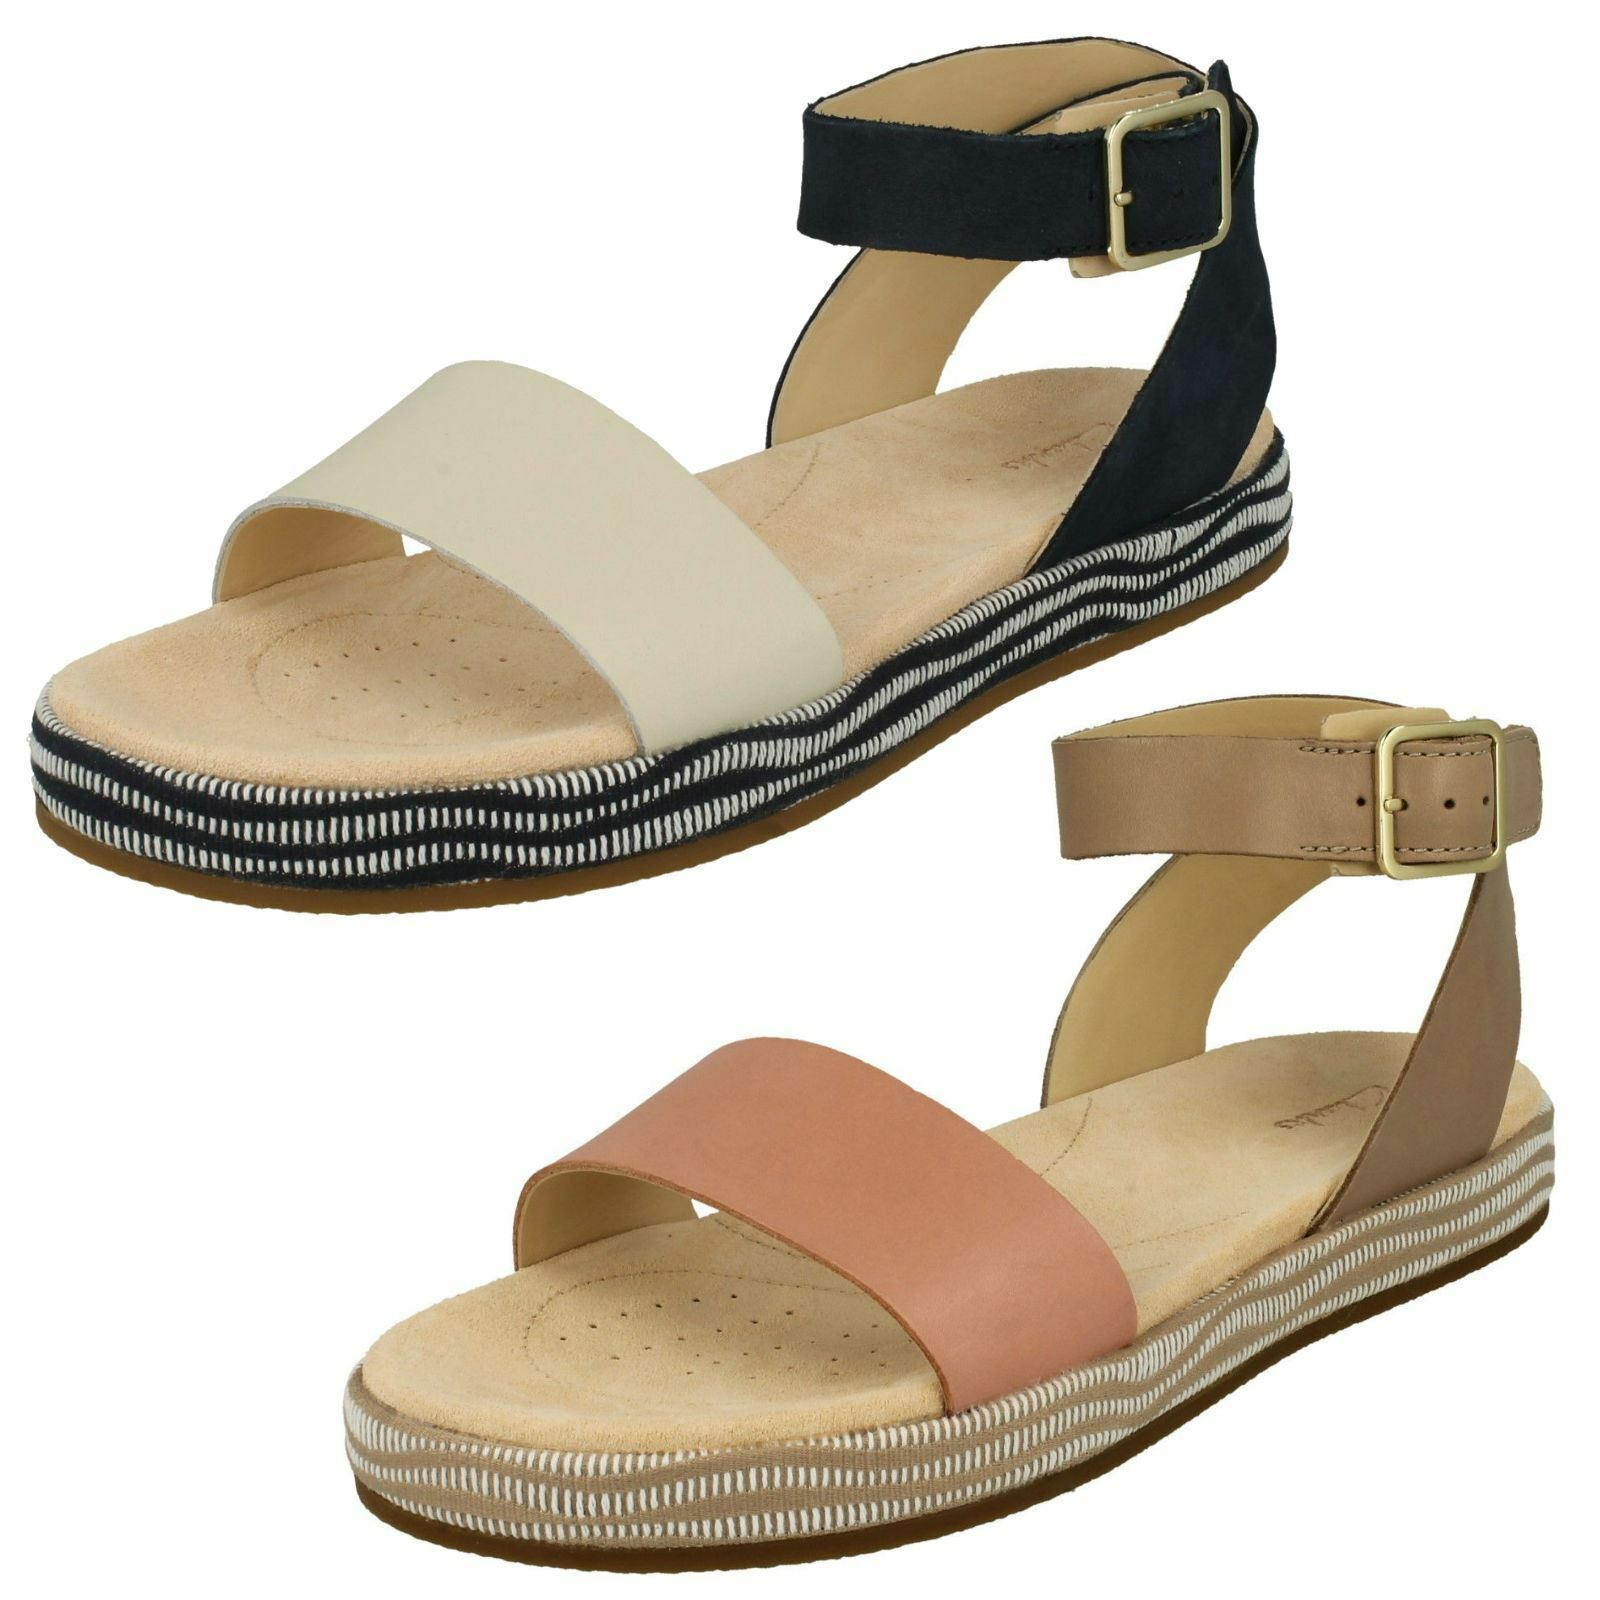 Ladies Clarks Botanic Ivy Casual Leather Sandals - D Fitting